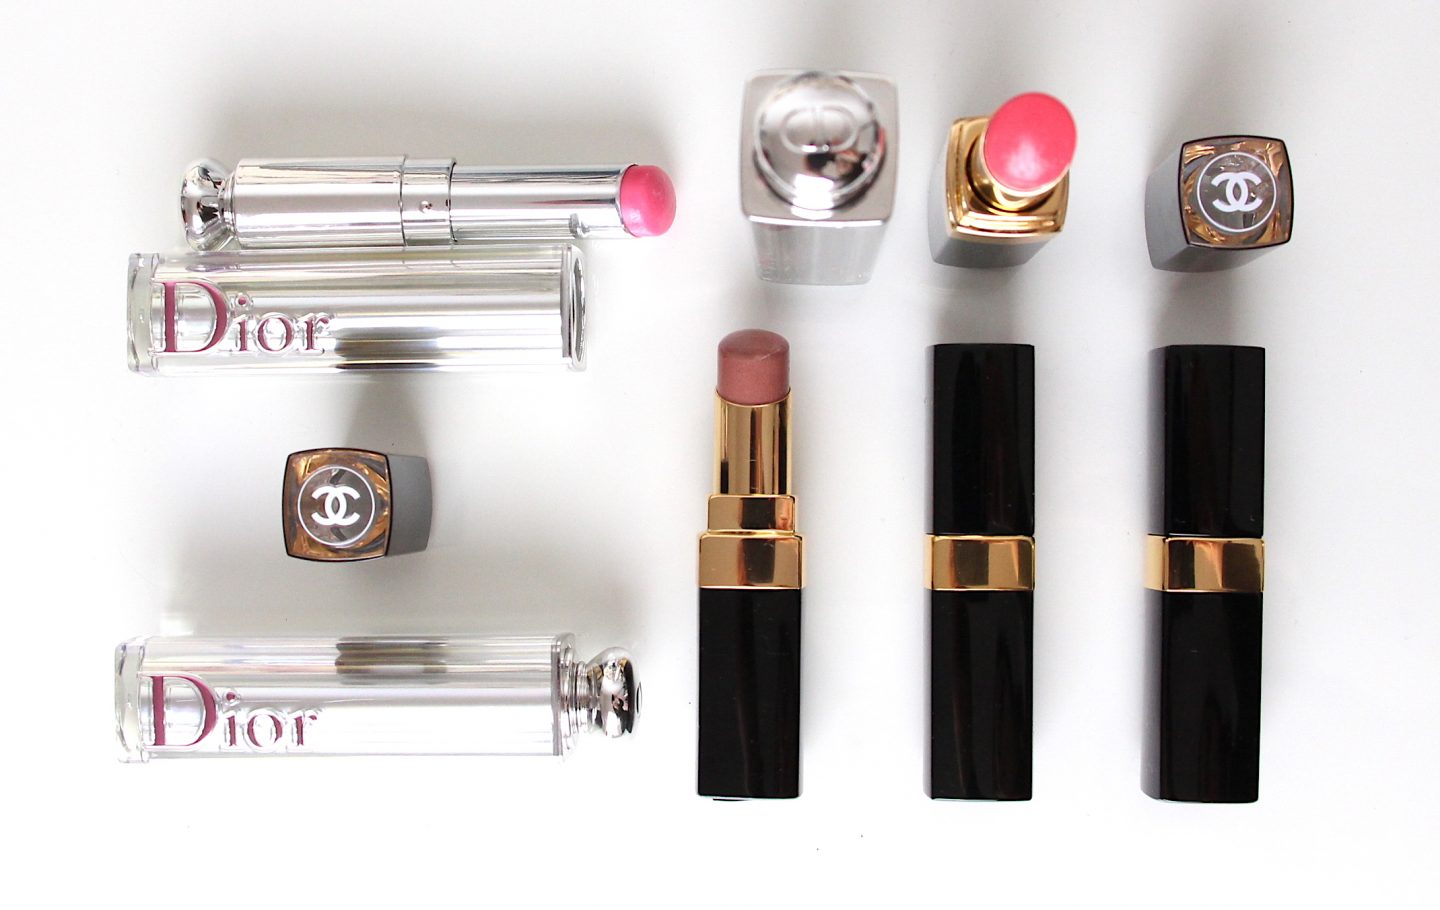 SHEER LIPSTICK FORMULAS: TOP PICKS FROM CHANEL AND DIOR 2019 RELEASES